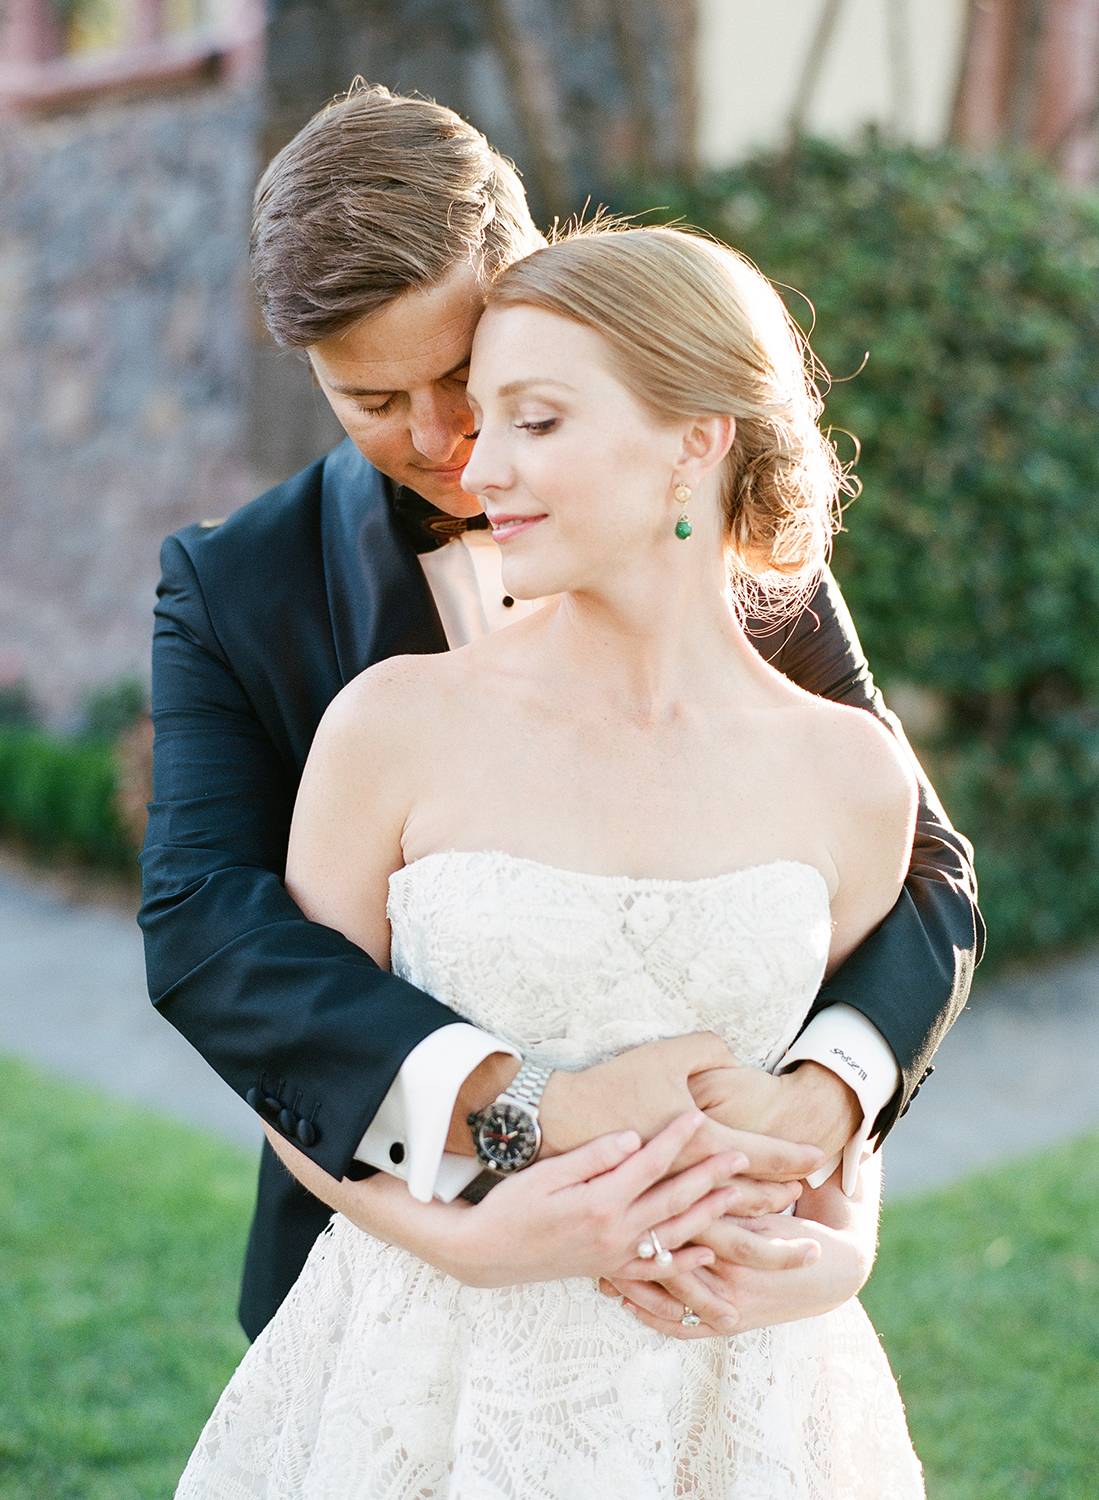 A sunset couple session after a wedding in San Miguel de Allende, Mexico; Sylvie Gil Photography